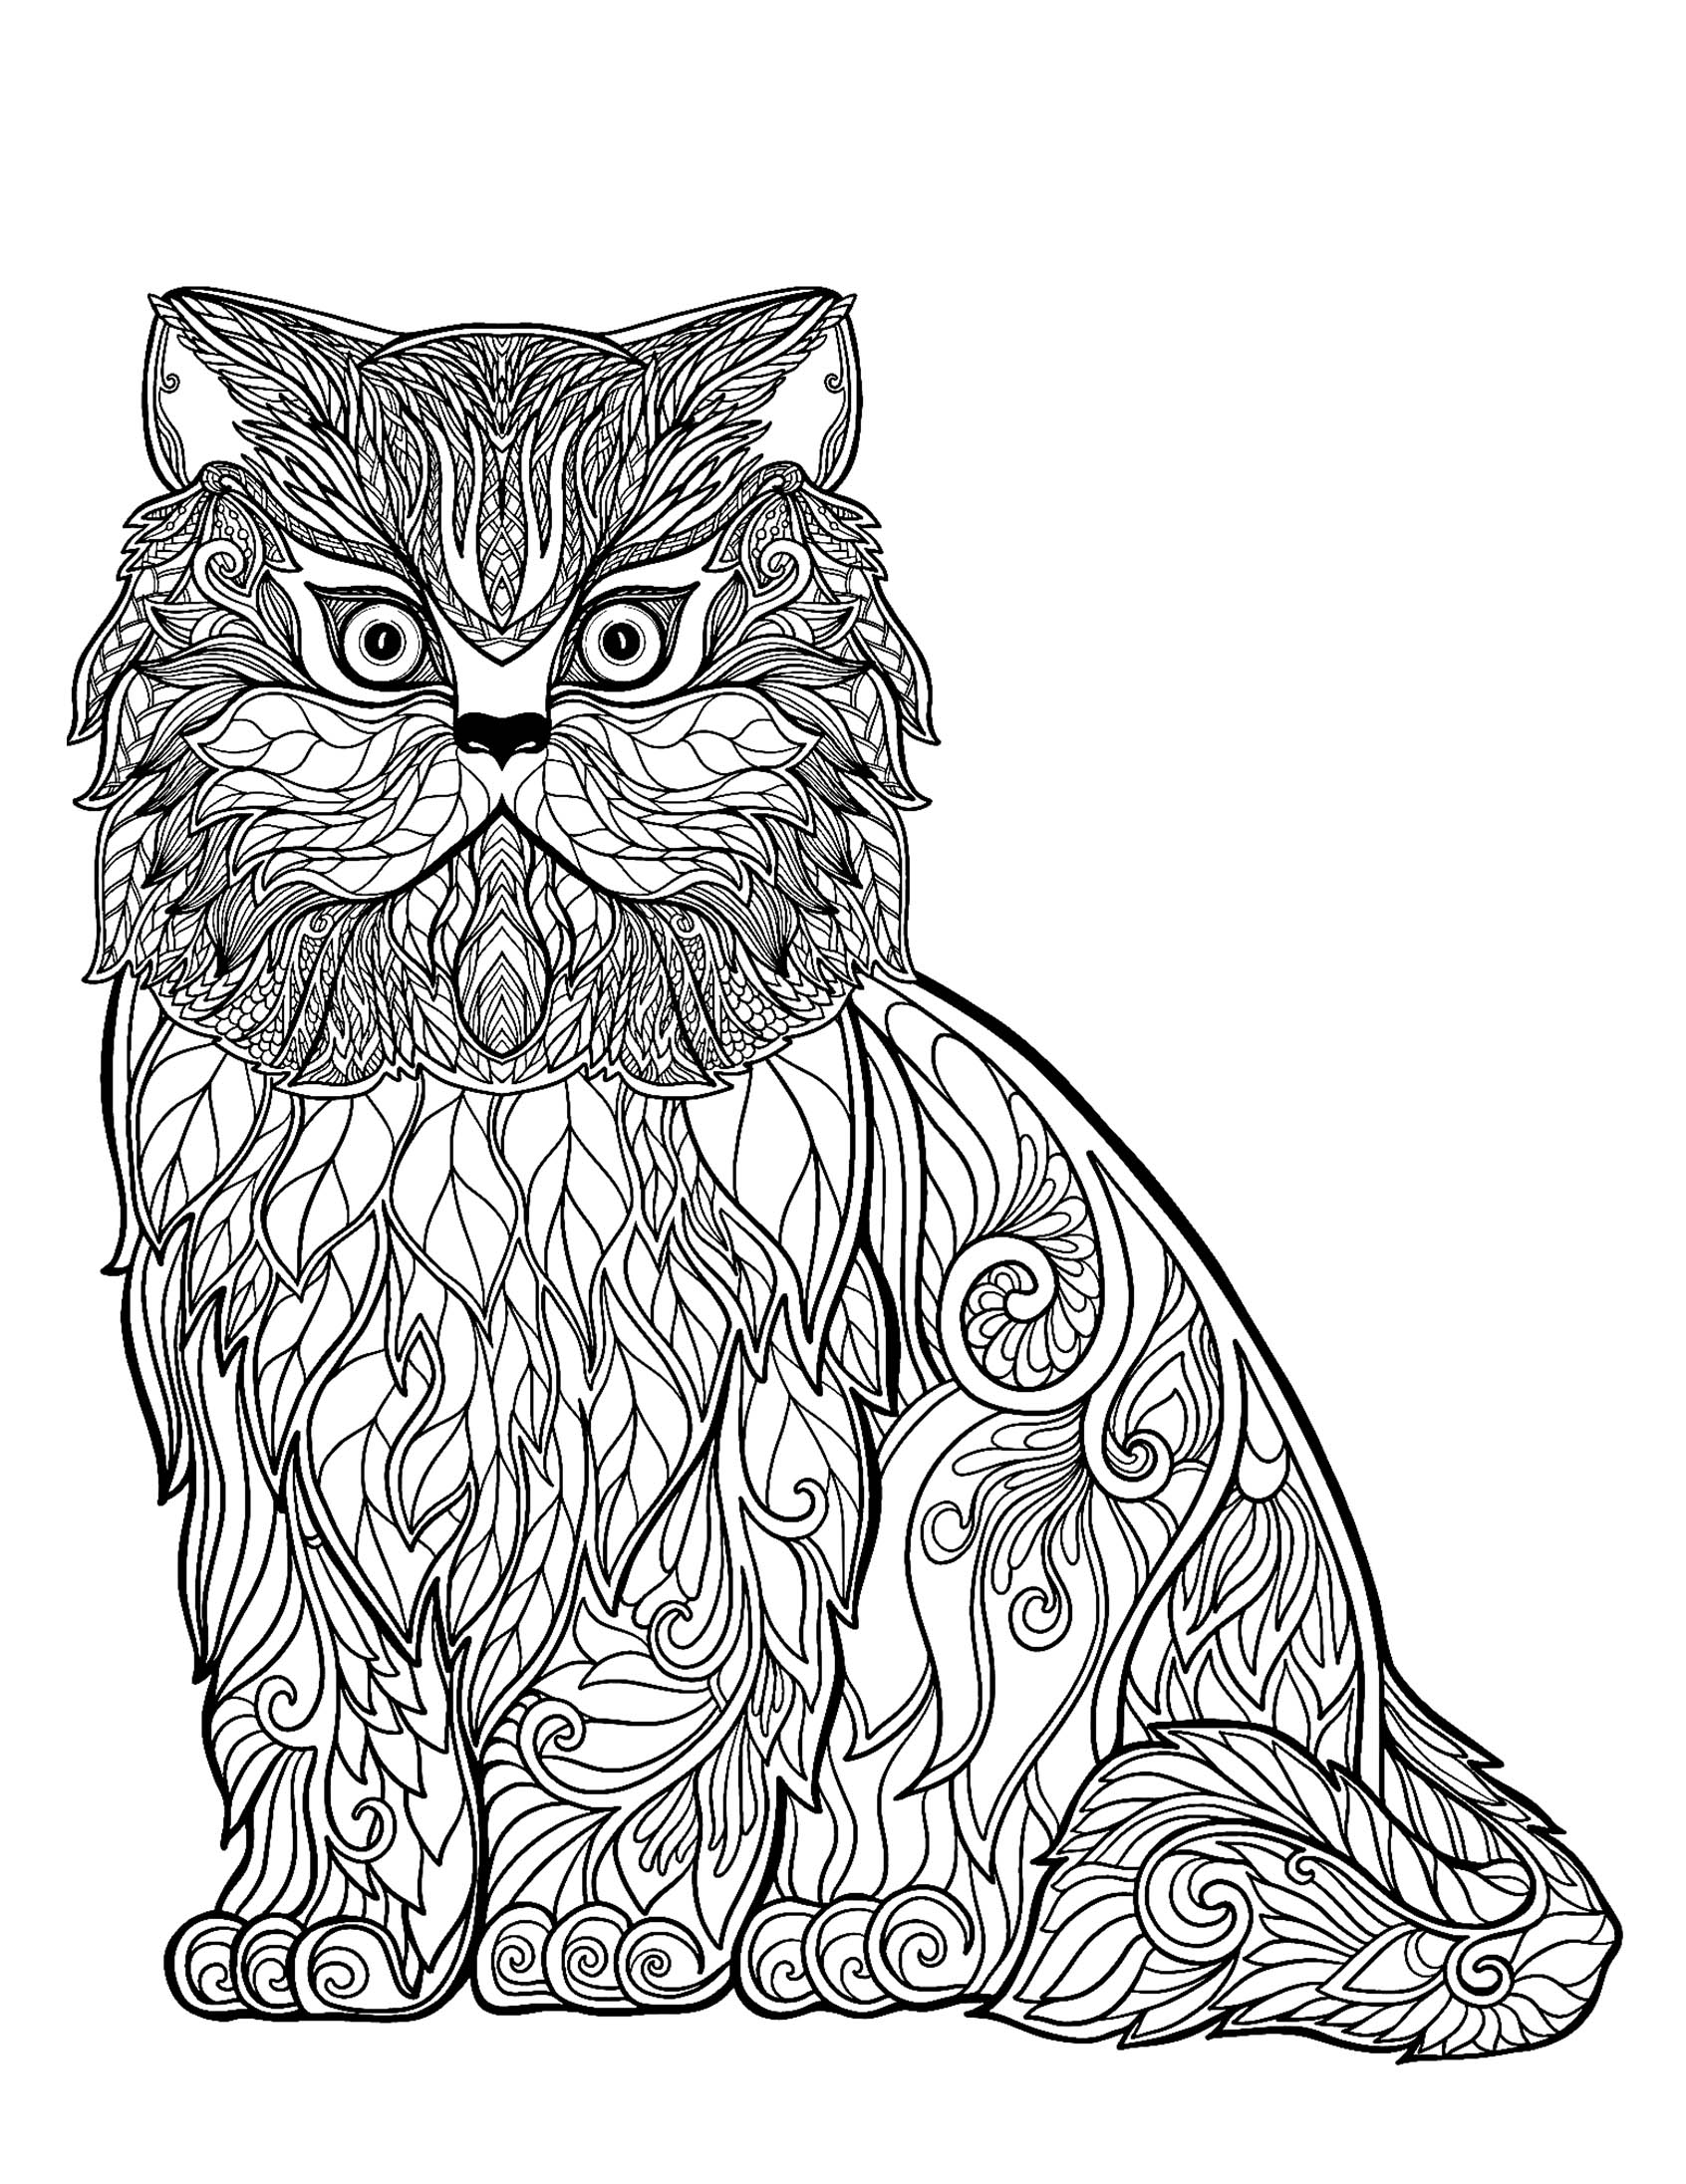 cat coloring picture cat coloring pages for preschoolers at getcoloringscom cat picture coloring